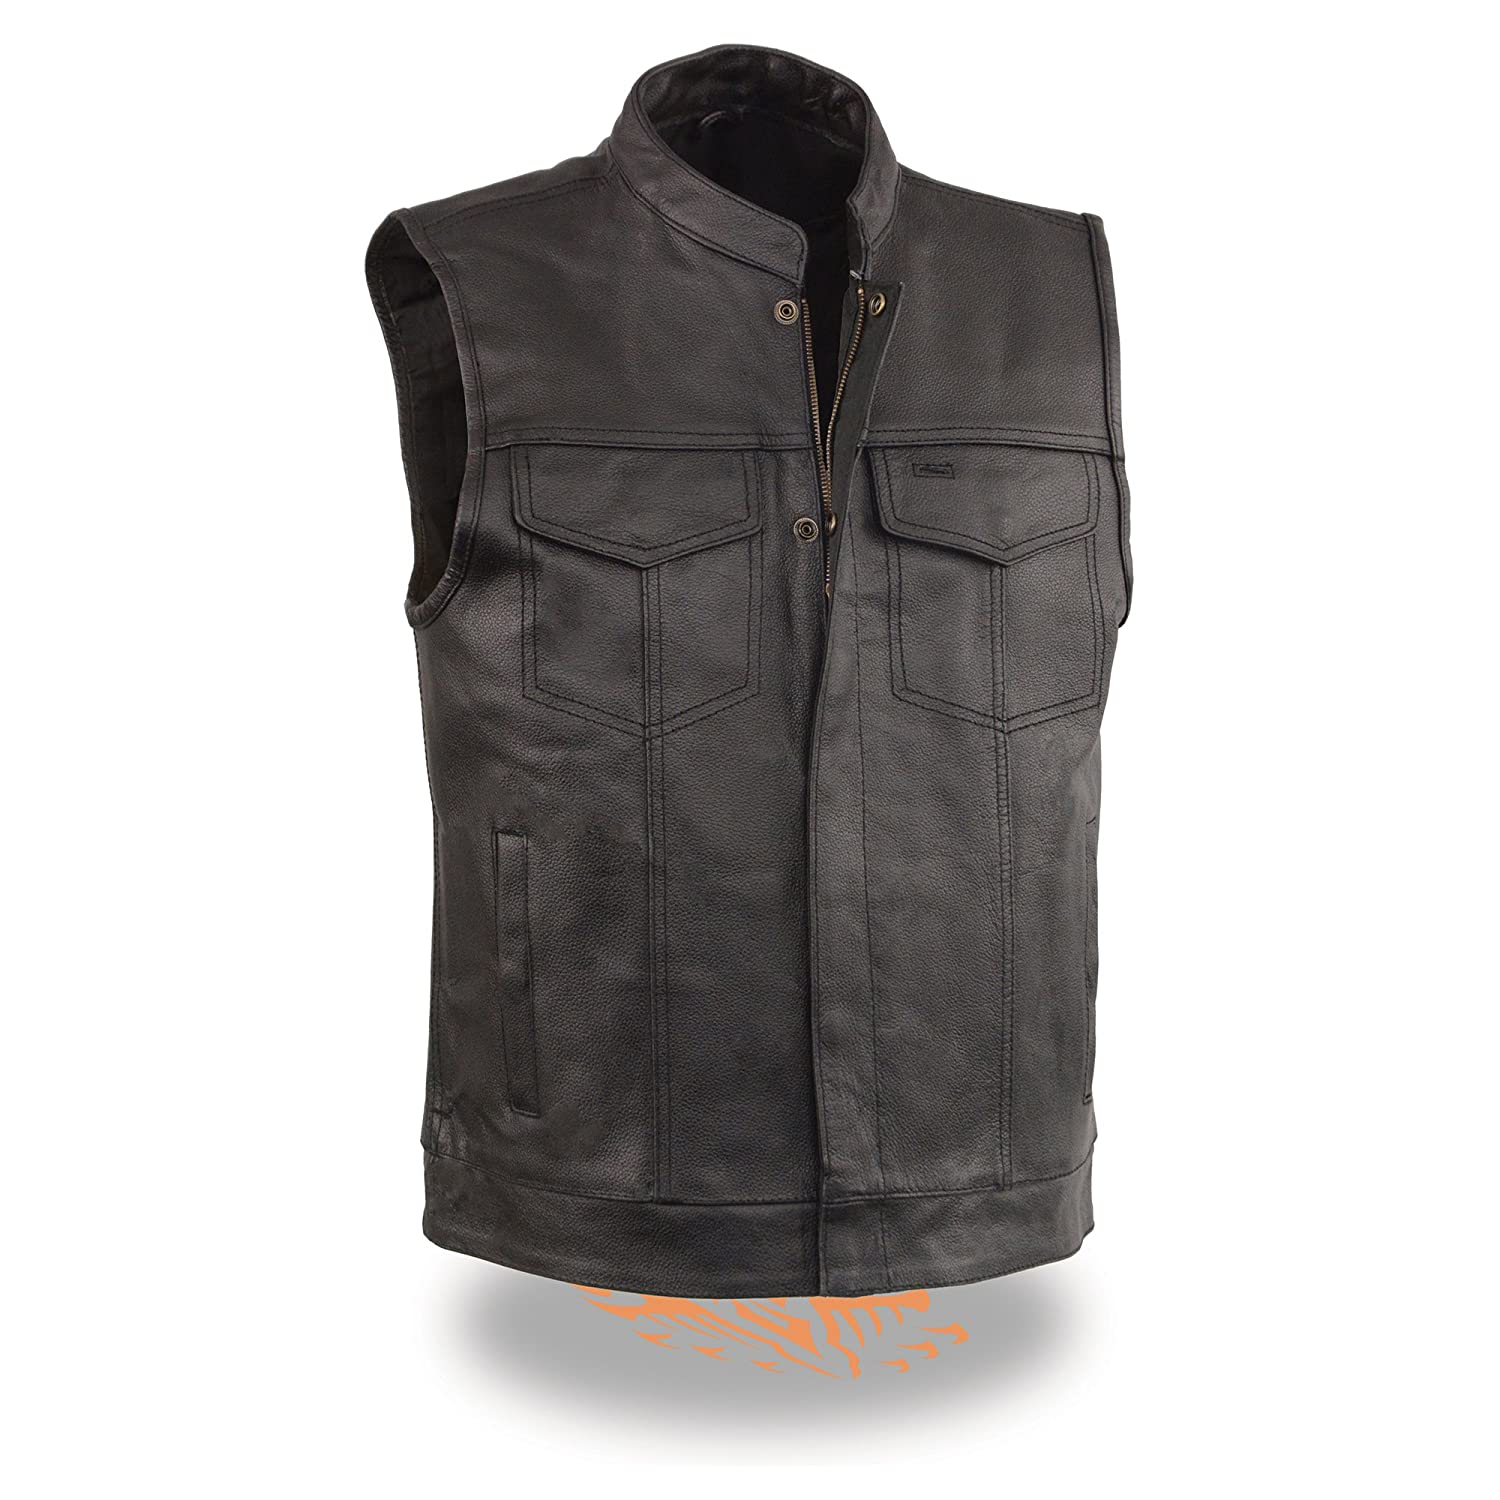 0199fd4c5 EVENT LEATHER Men's Leather Motorcycle Vest Zipper & Snap Closure w/2  Inside Gun Pockets & Single Panel Back